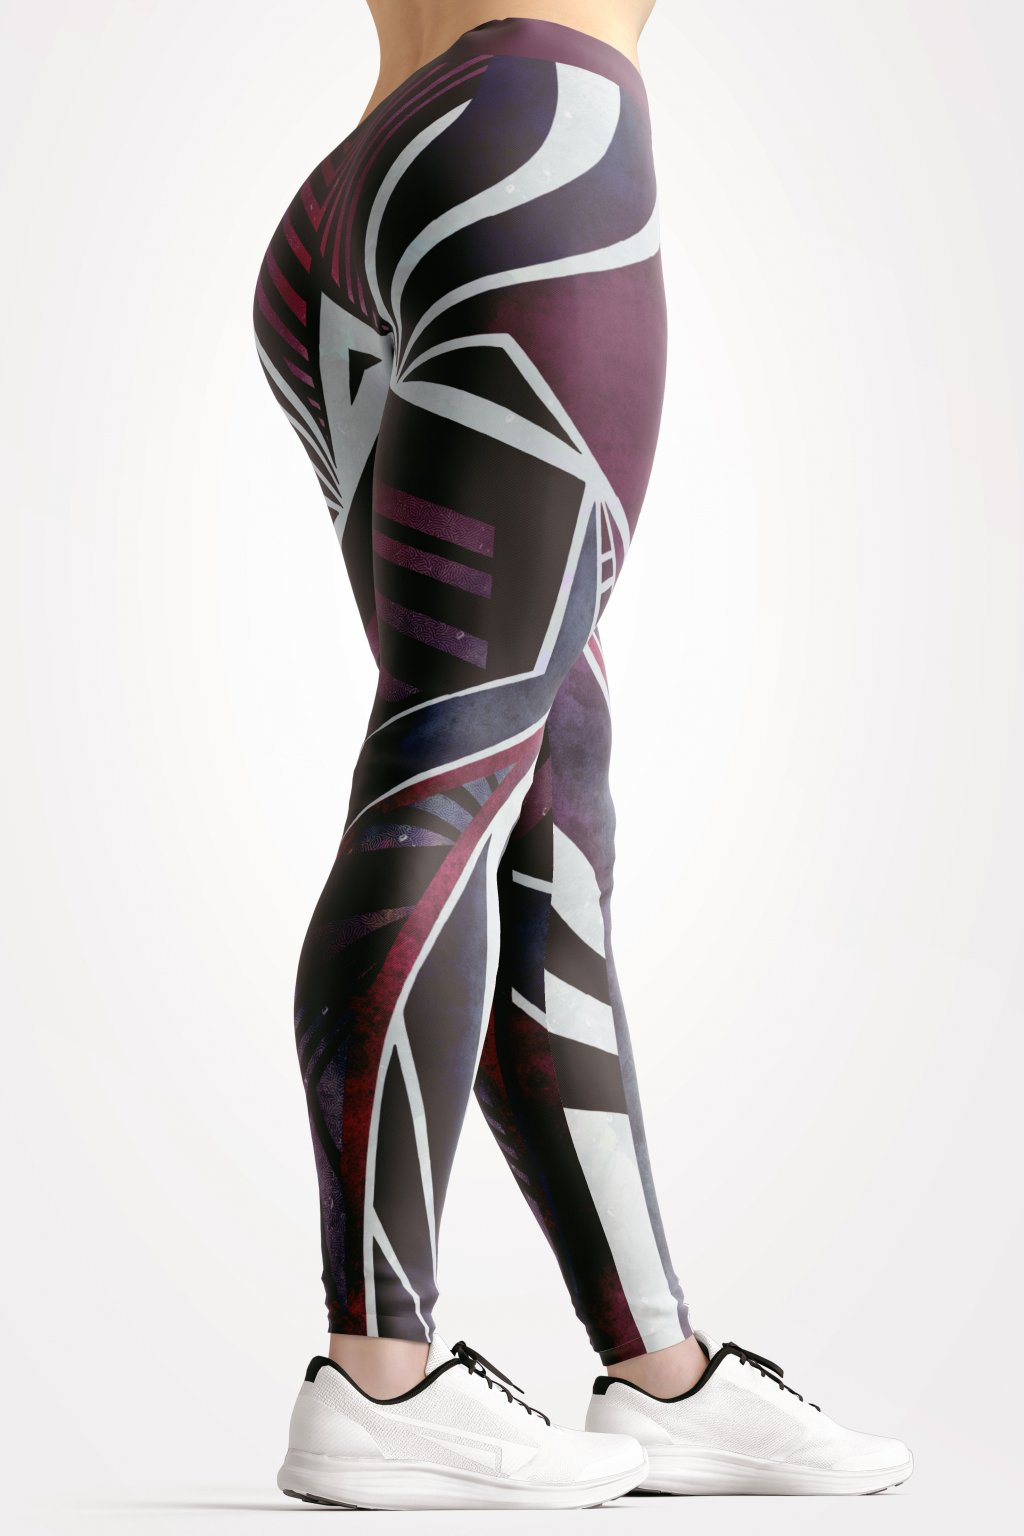 sacred lines leggings back side by utopy